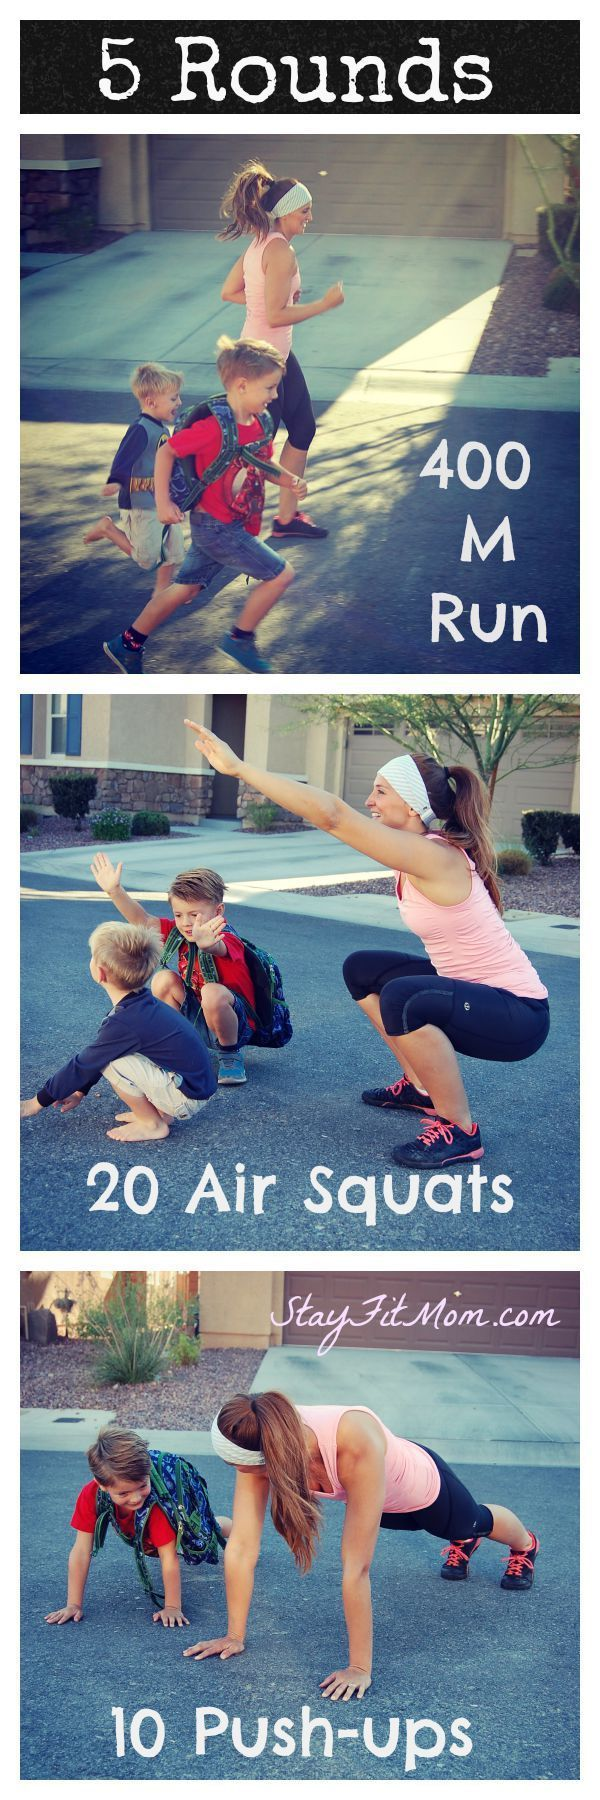 At home CrossFit Workouts you can do with your kids around from http://StayFitMom.com!